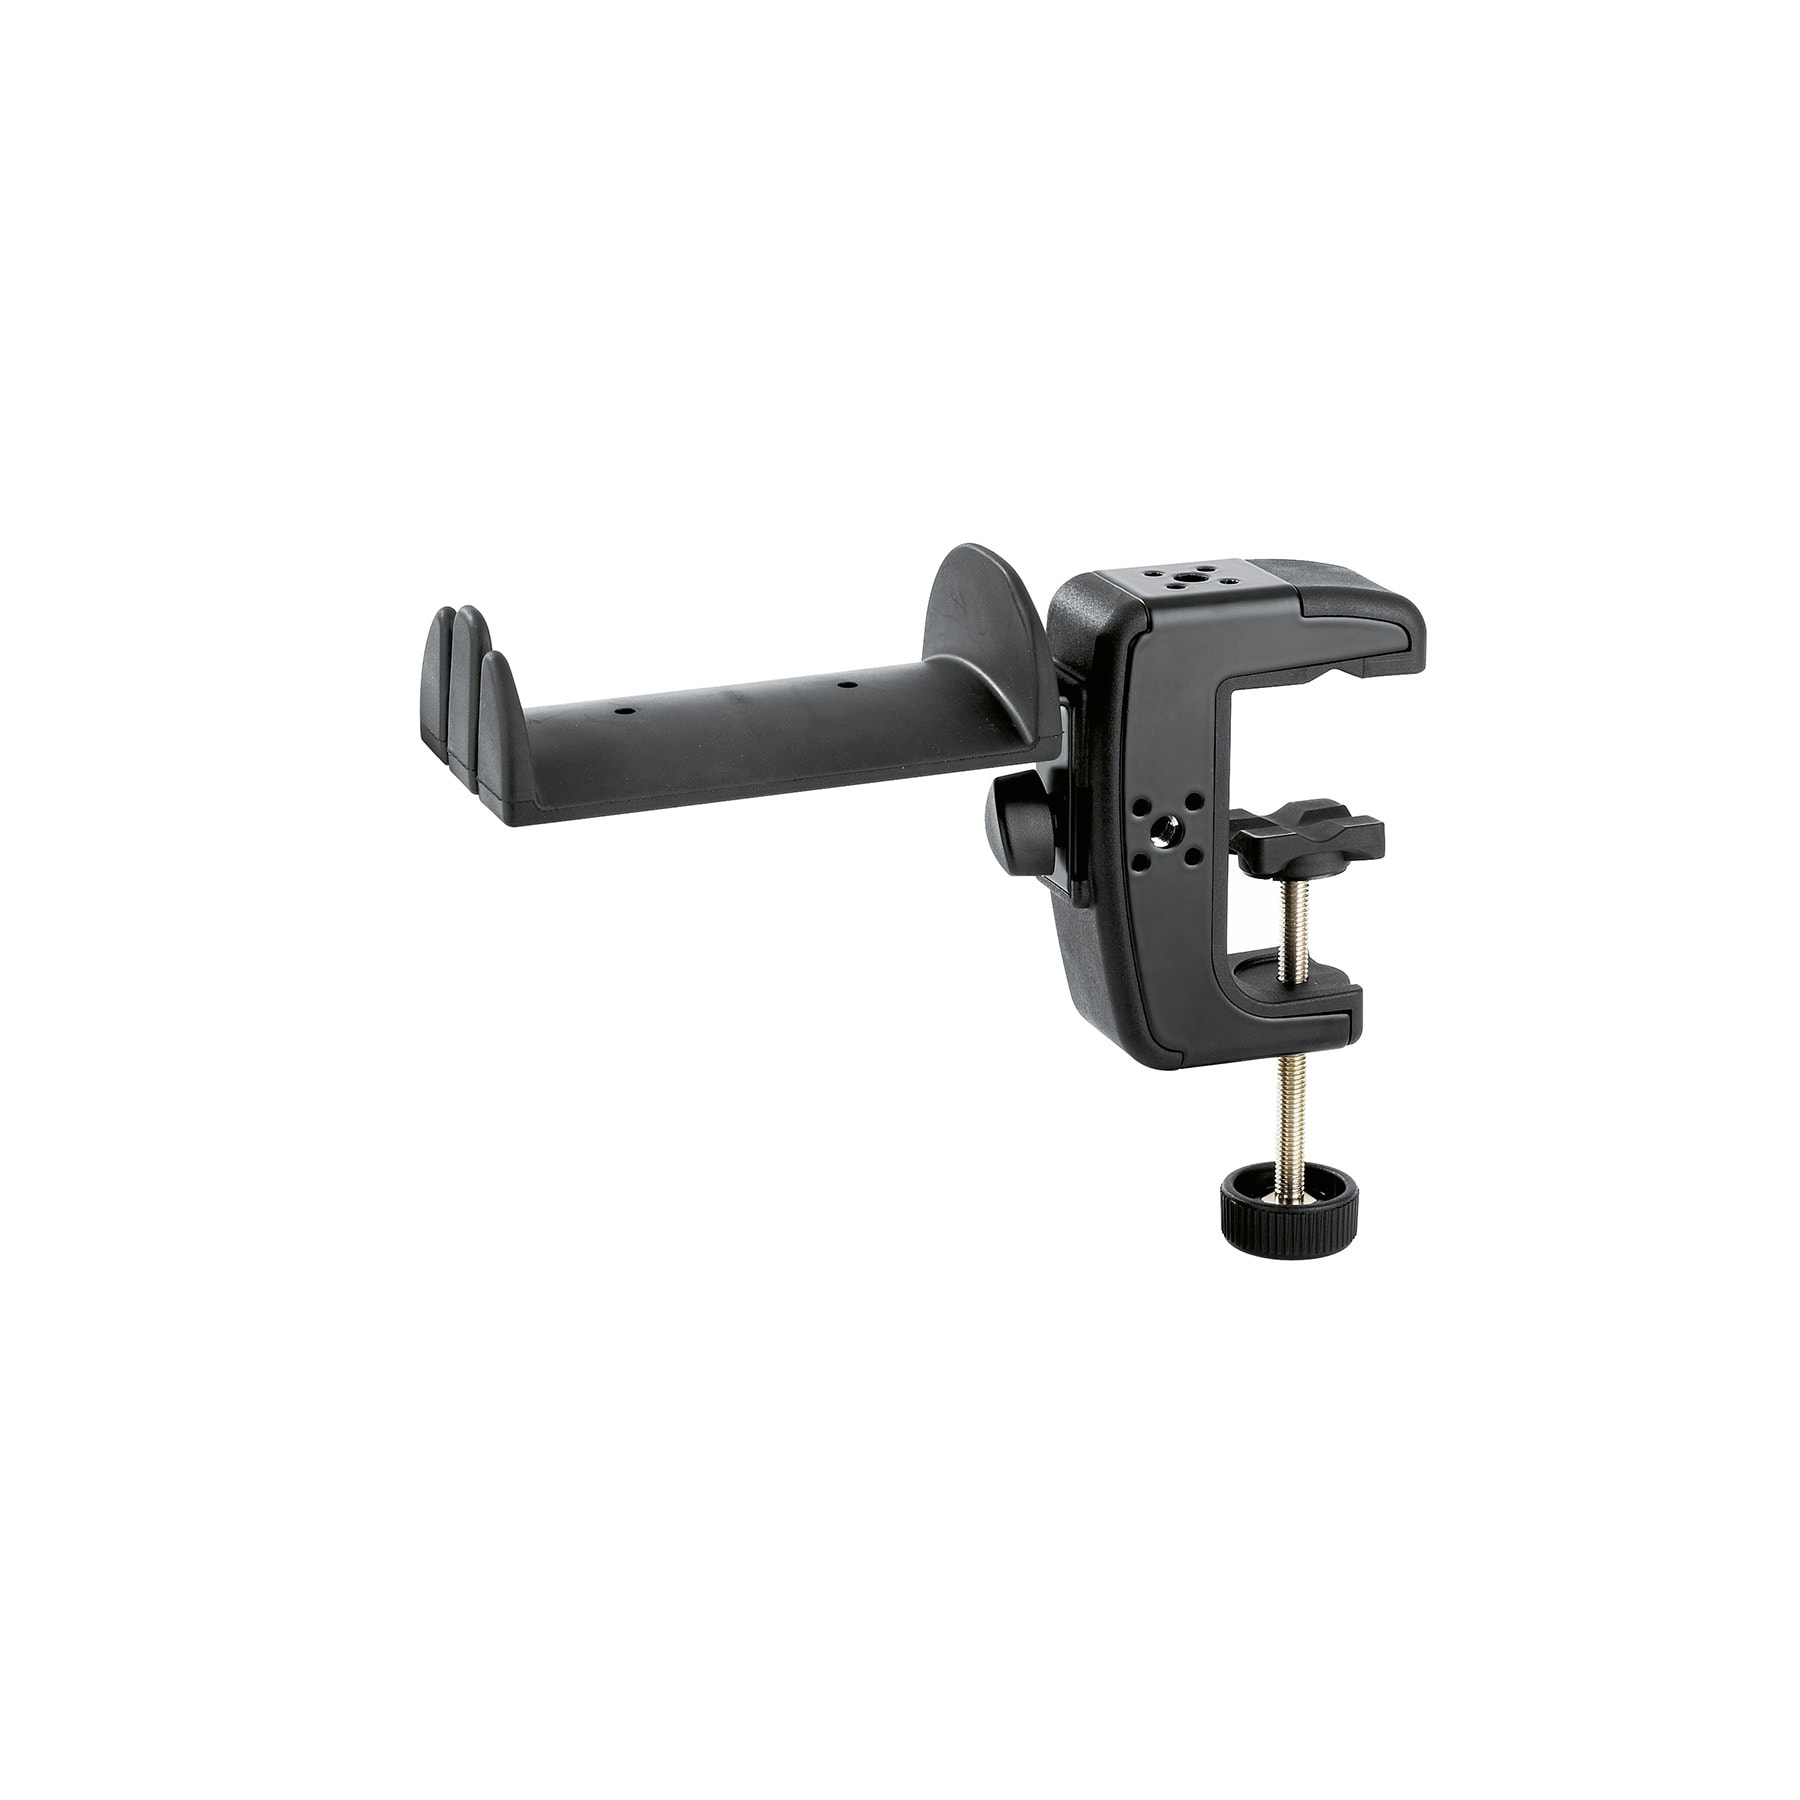 KM16085 - Headphone holder with table clamp